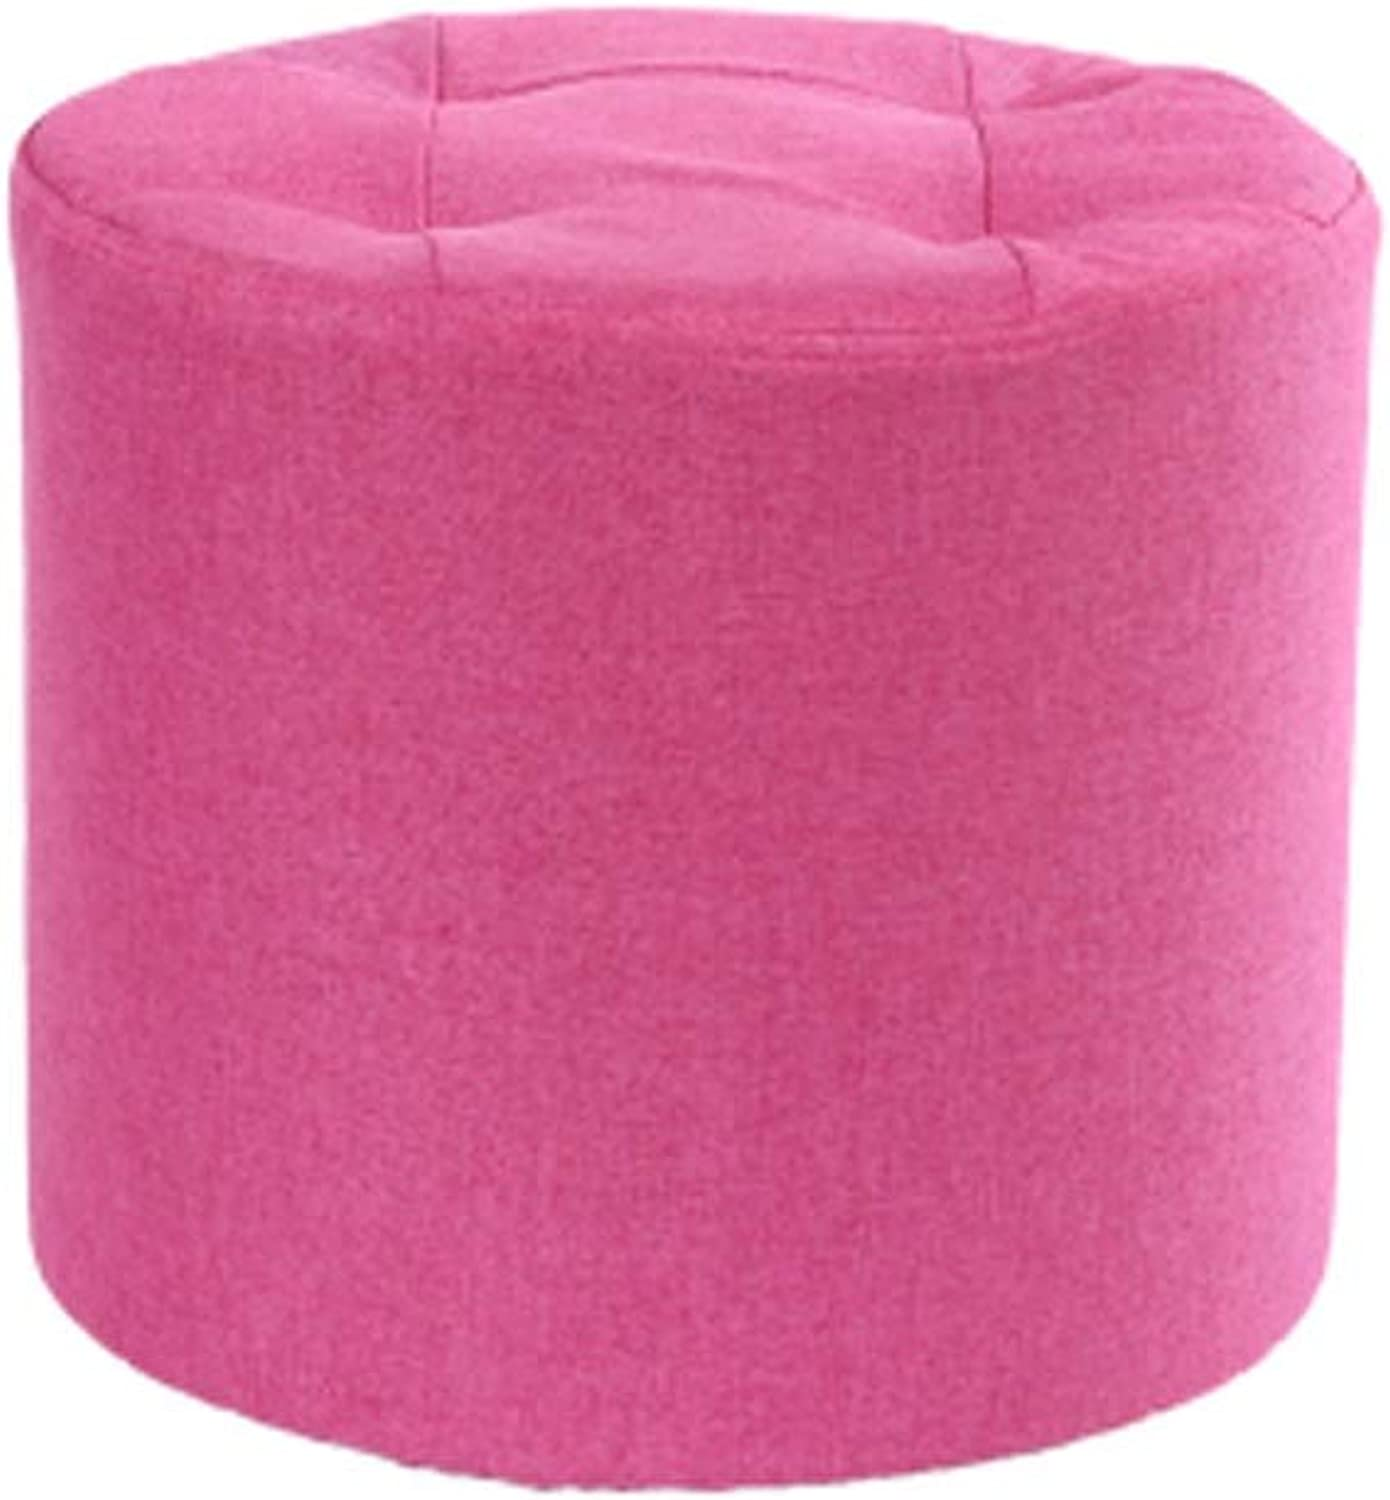 LLSDLS Solid Wood Stool Creative Modern Minimalist Sofa Stool Fashion Fabric Stool Coffee Table Stool Home Adult Small Bench. (color   Pink)